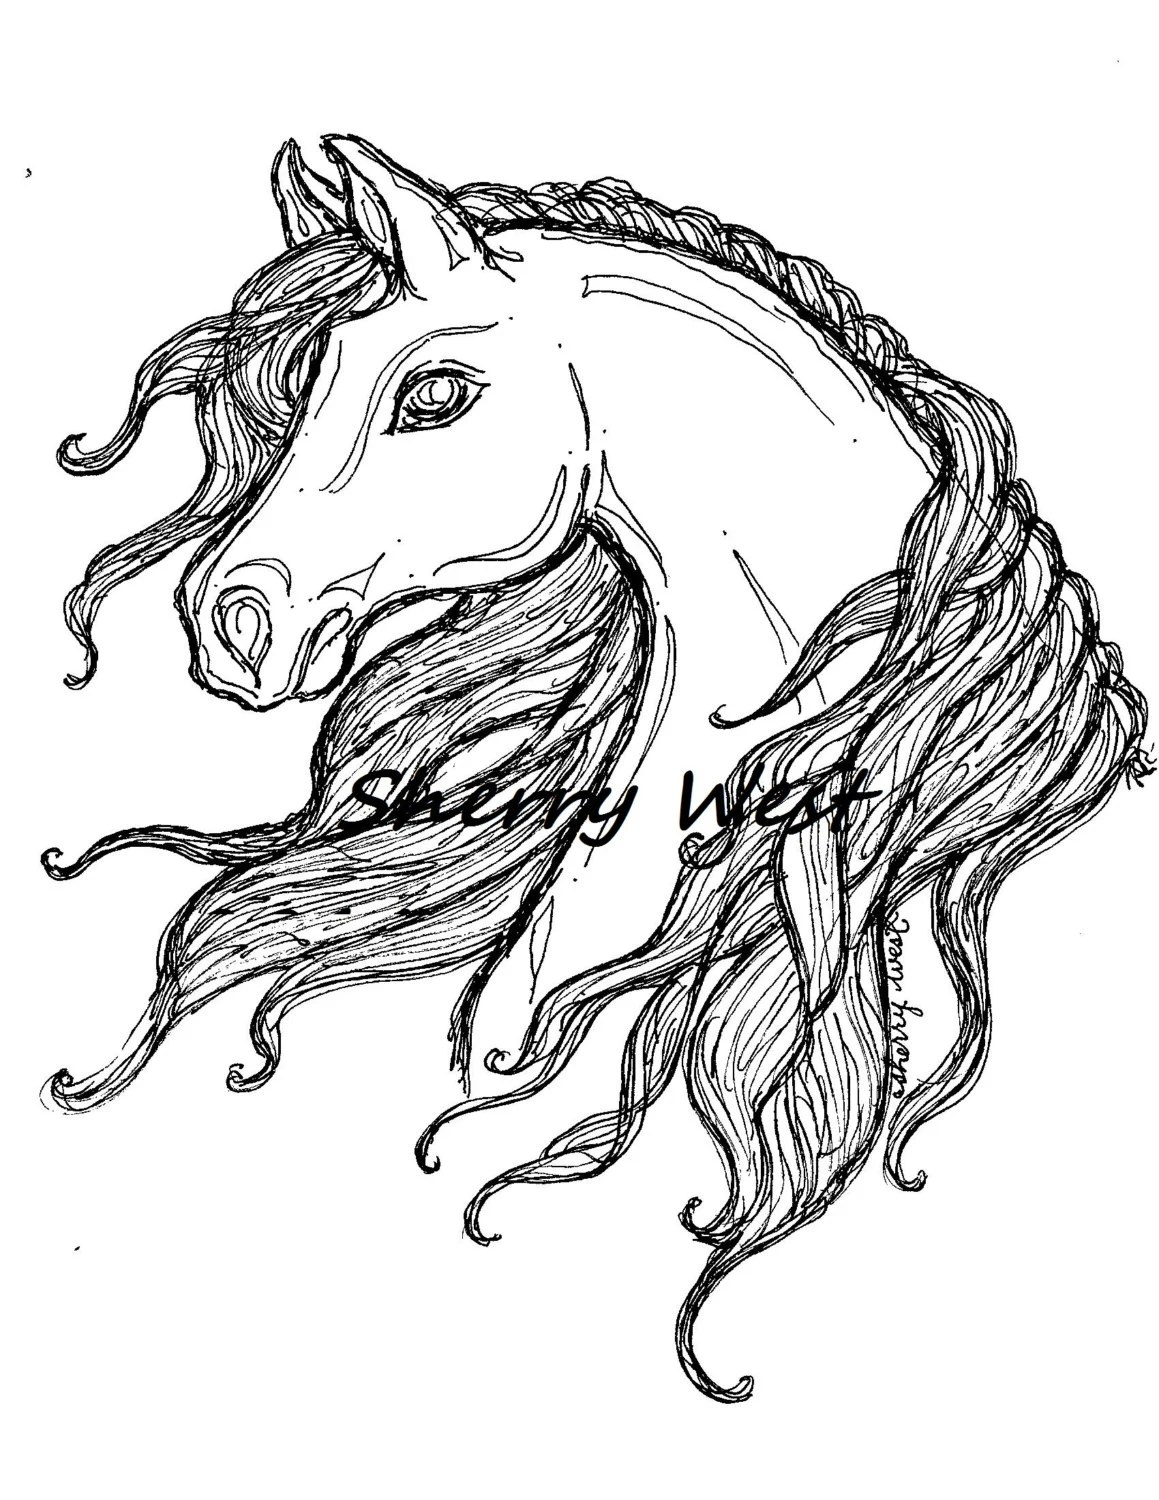 1 Alluring Arabian Horse Sherry West Coloring Page Doodle Clip